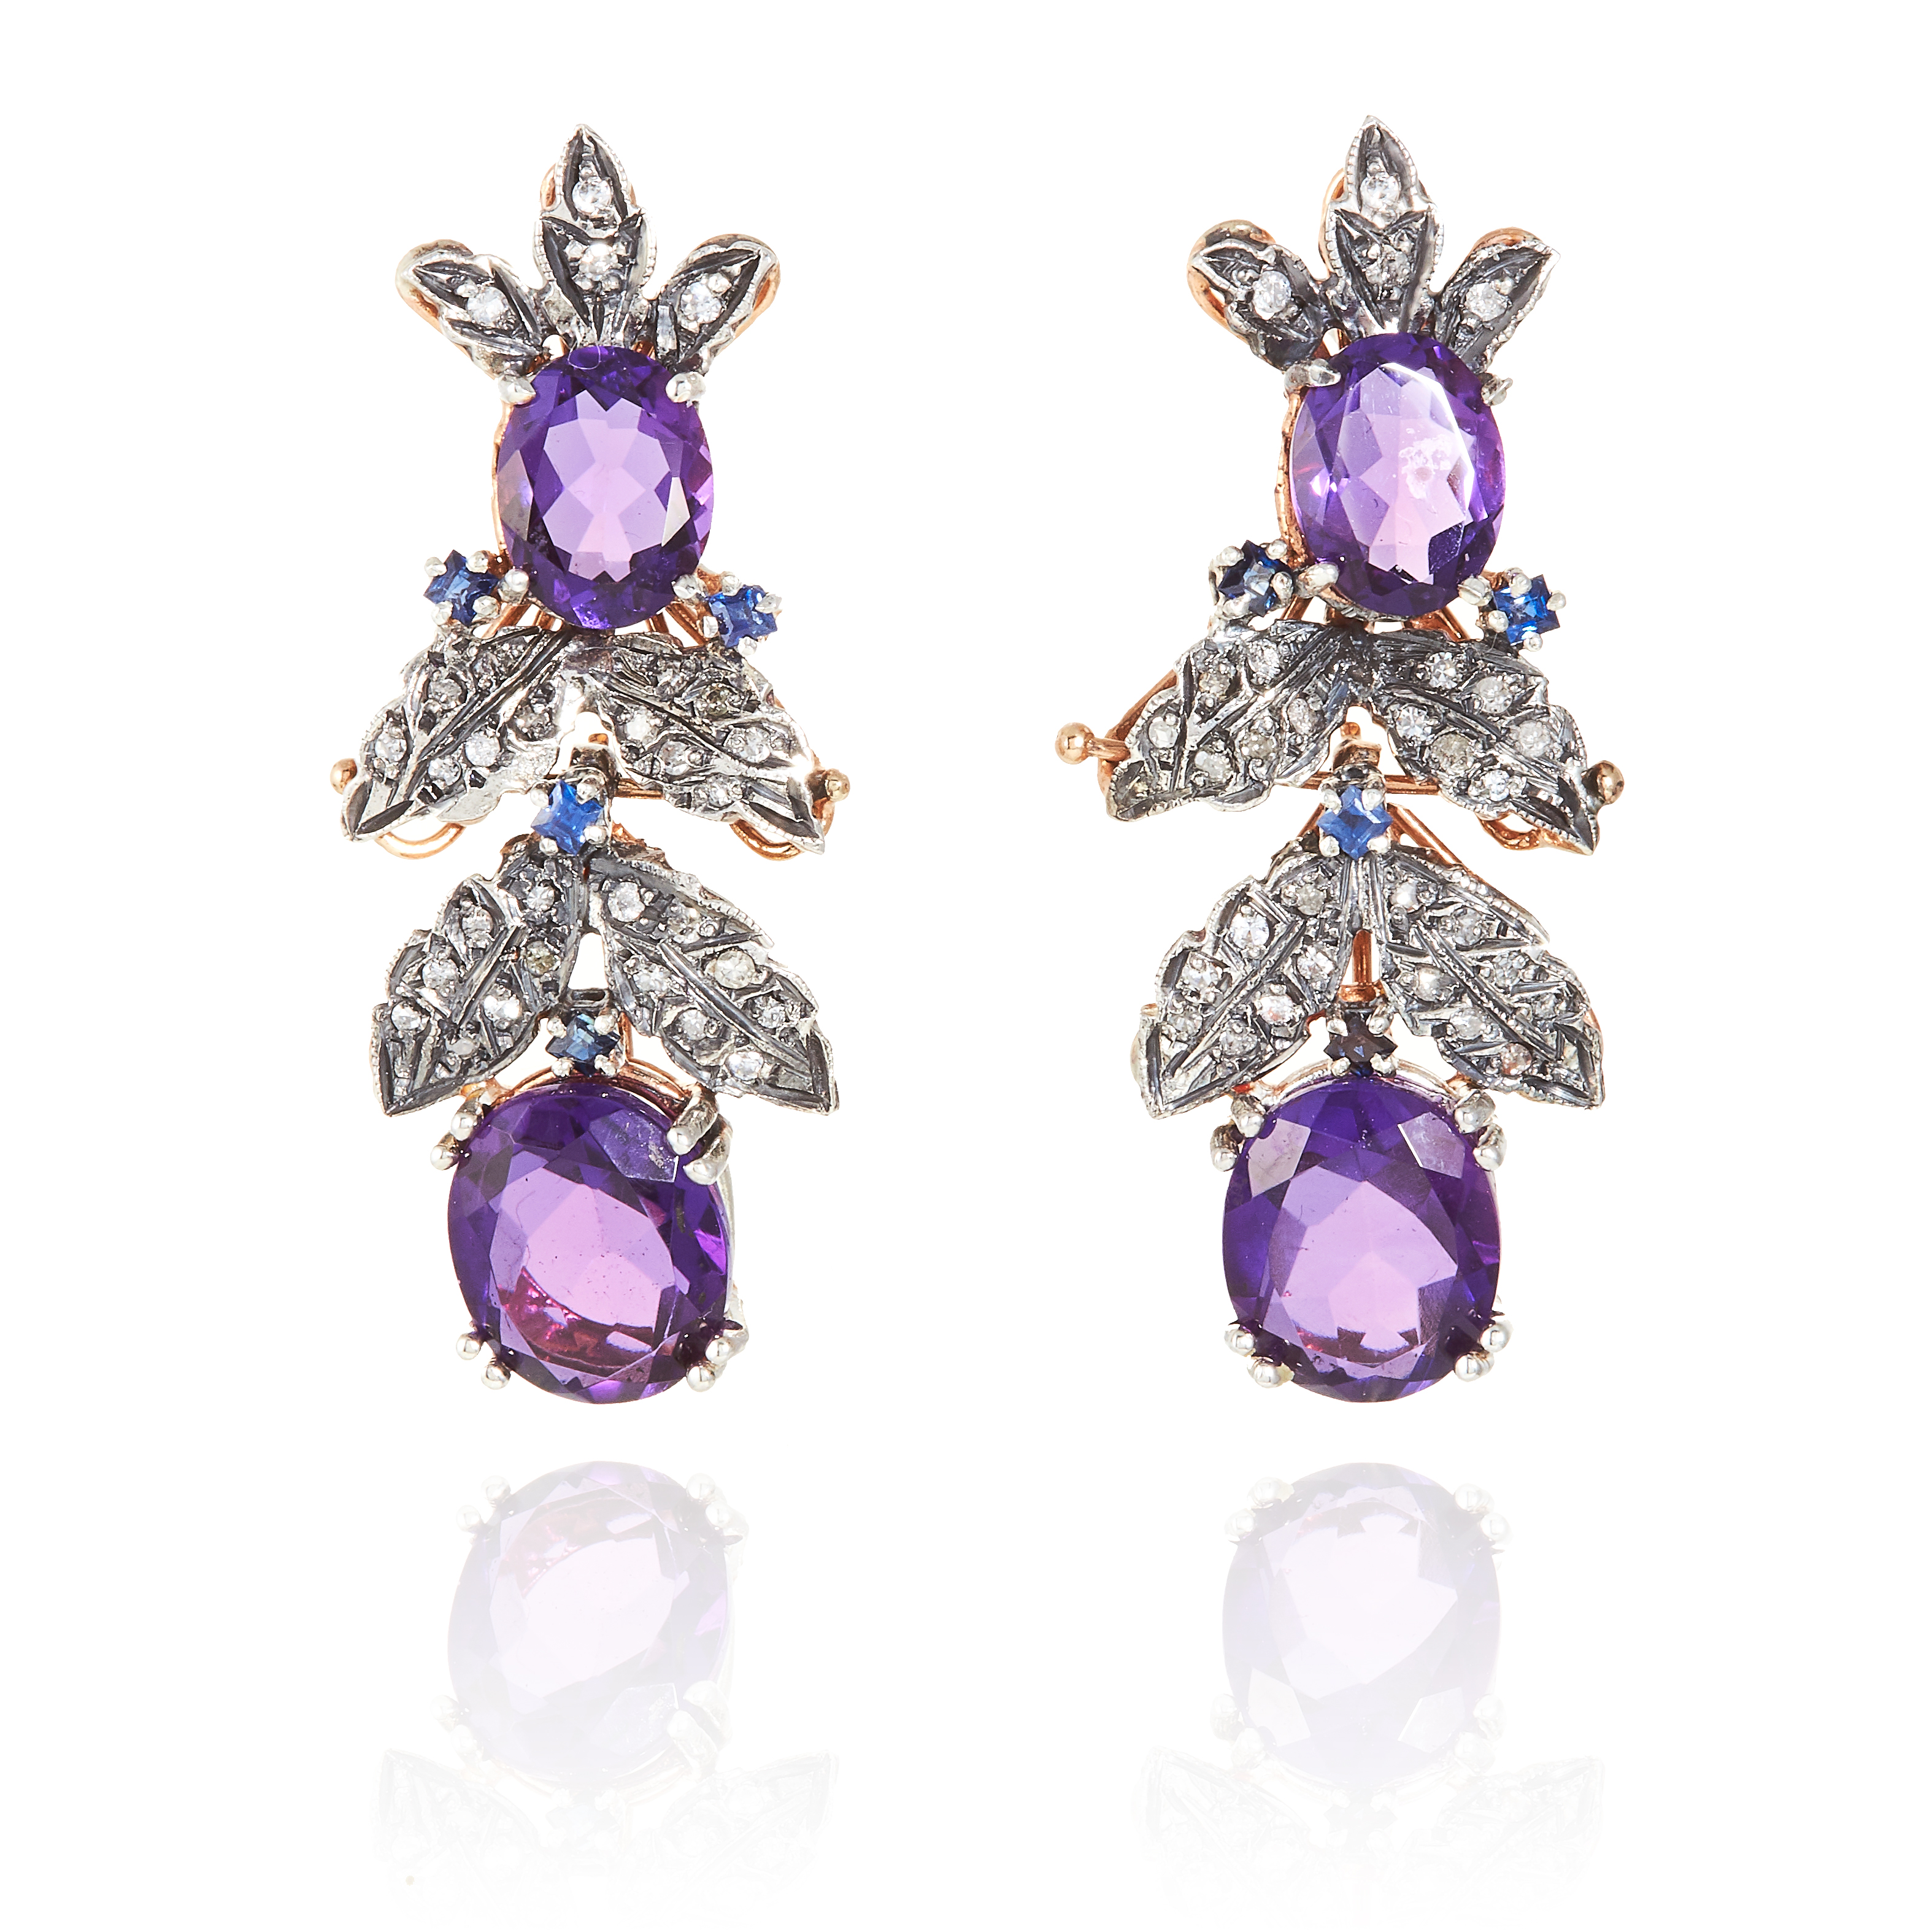 A PAIR OF ANTIQUE AMETHYST, DIAMOND AND SAPPHIRE EARRINGS in yellow gold and silver, the articulated